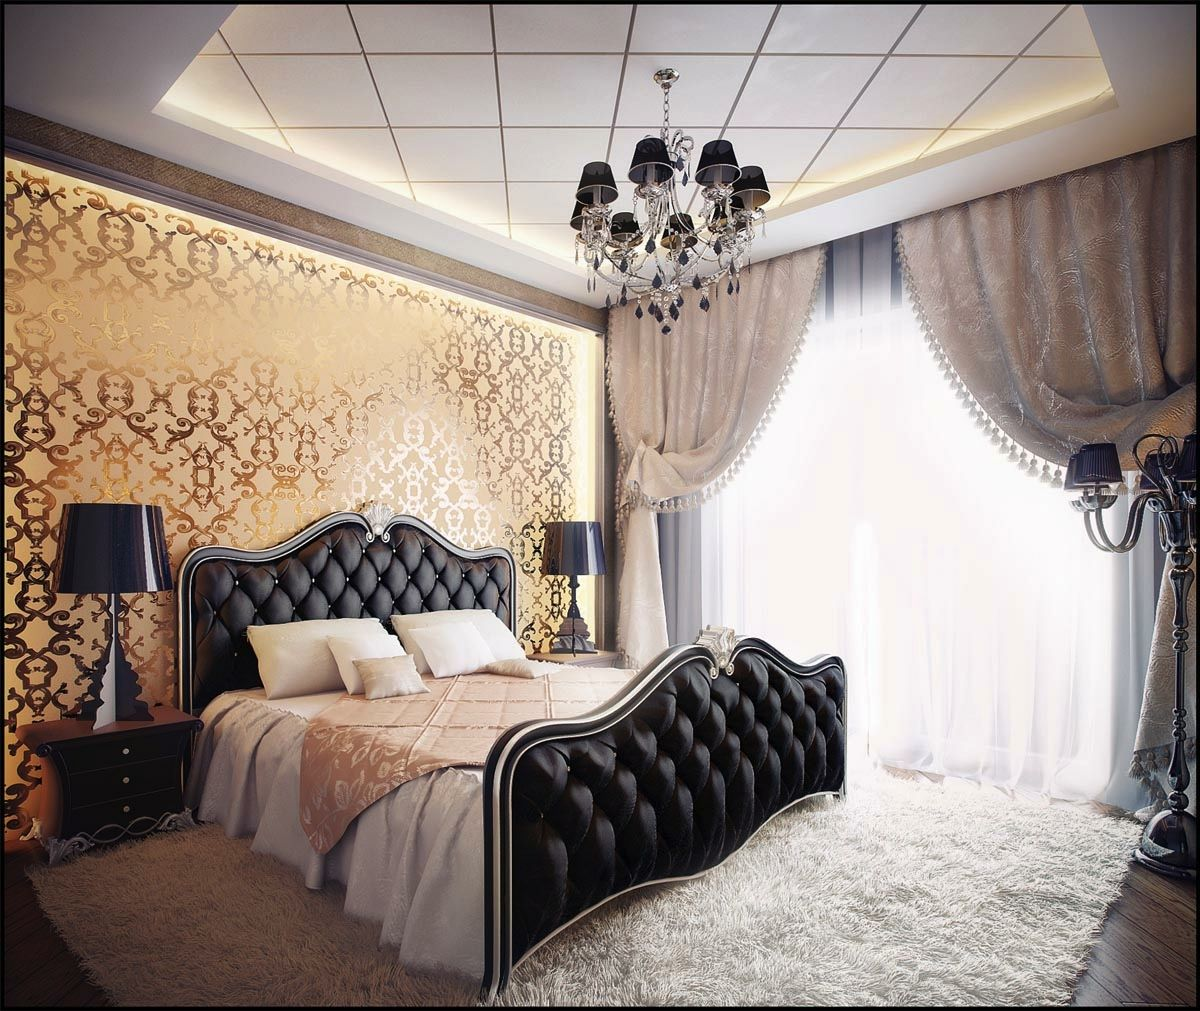 Bedroom Images Interior Designs Bedroom Samples Interior Designs